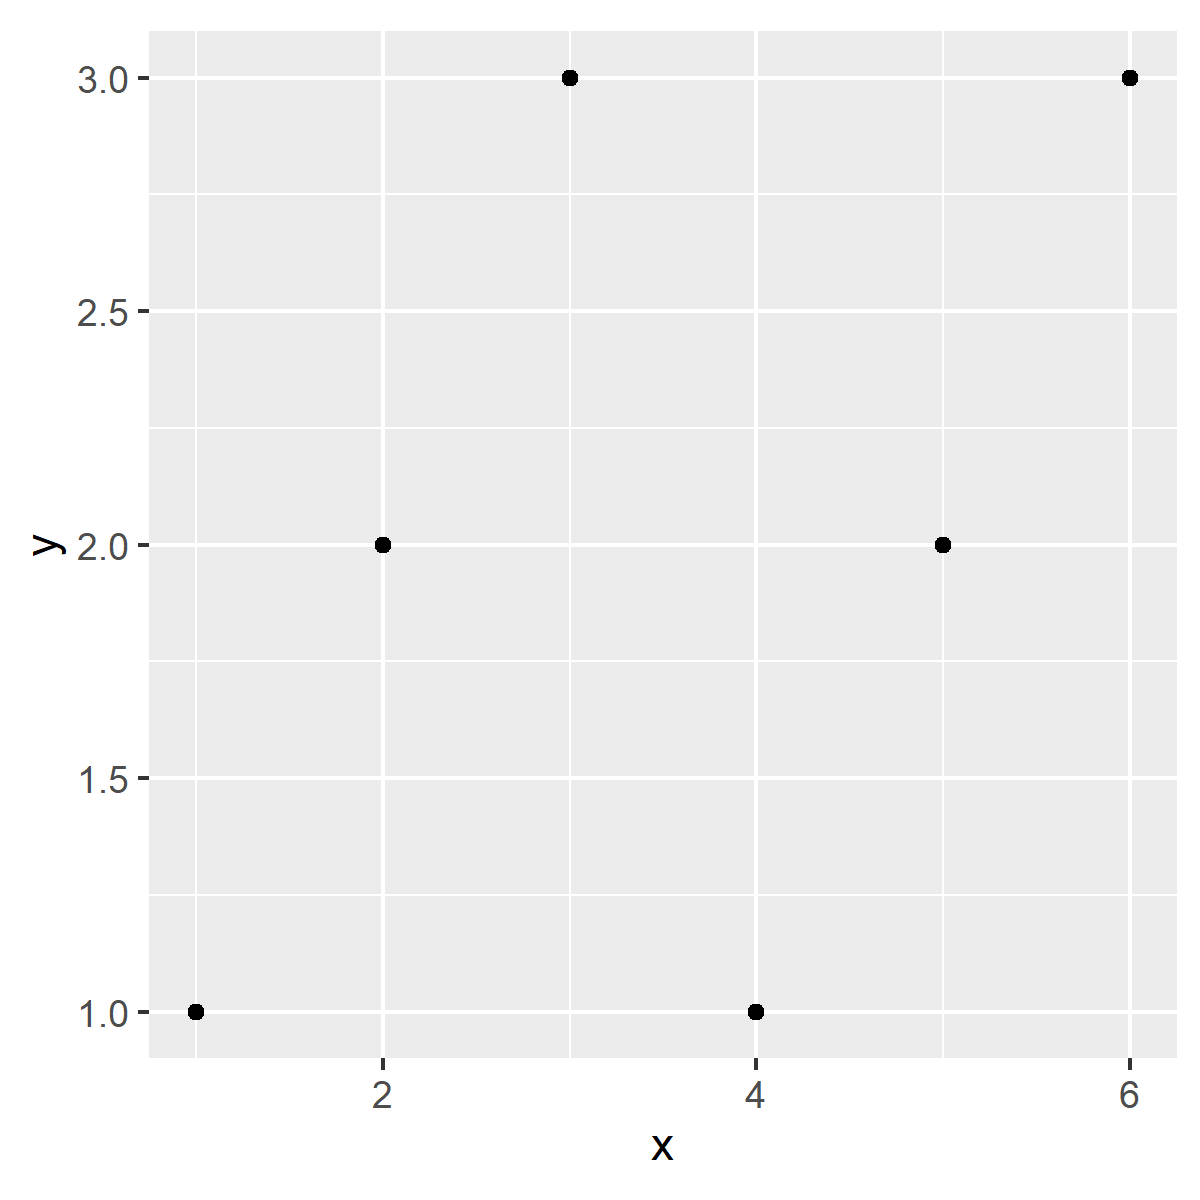 r graph figure 5 force axes be square shaped